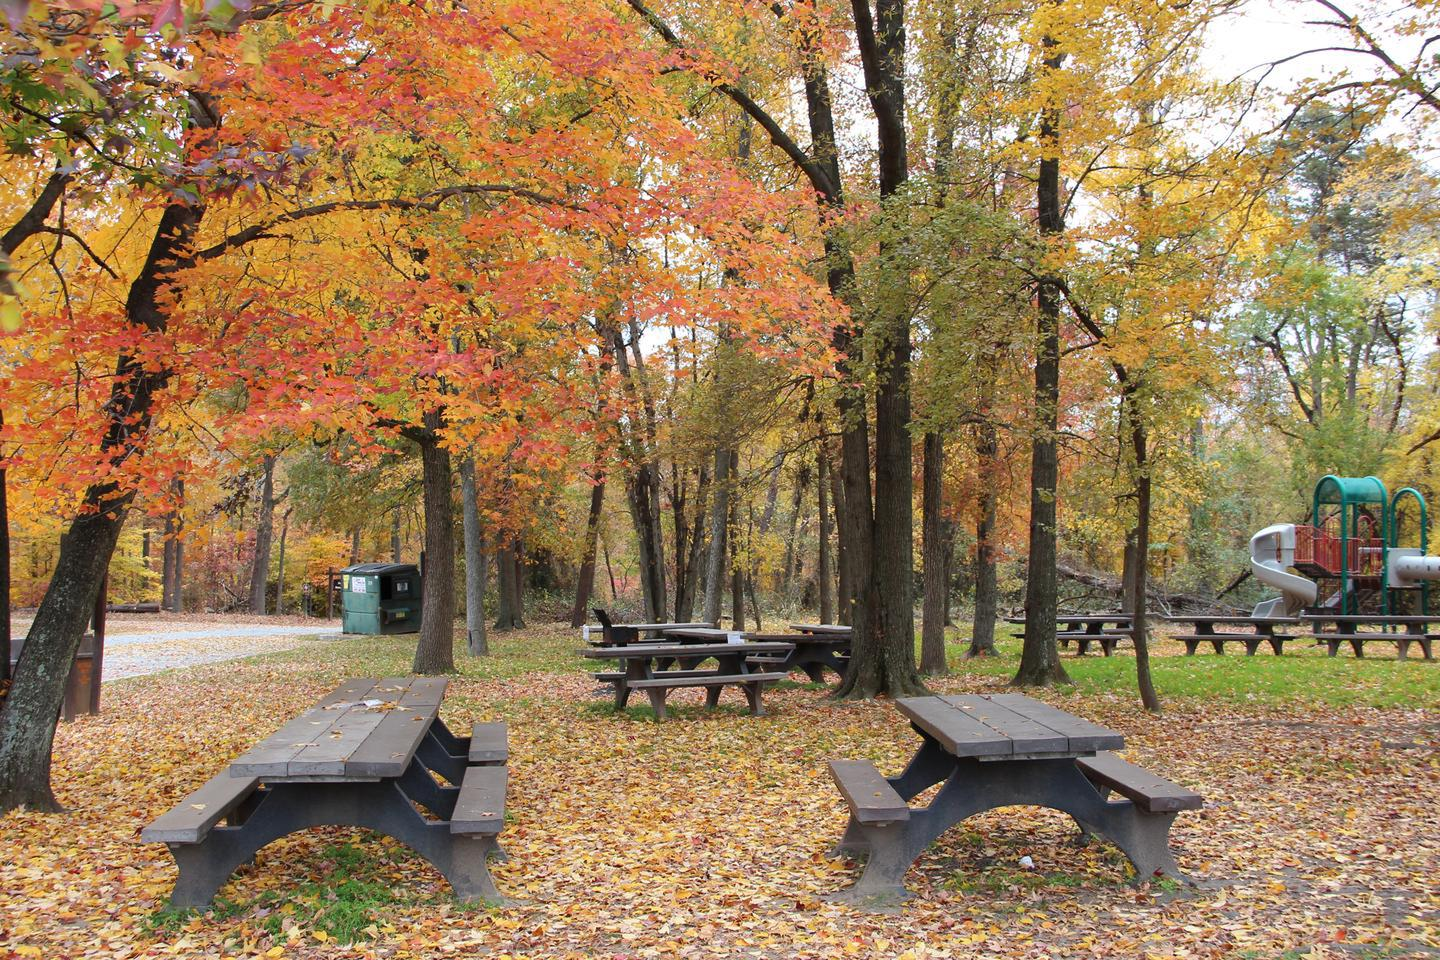 Fall Colors in the Sweetgum Picnic Area, Greenbelt Park, Maryland